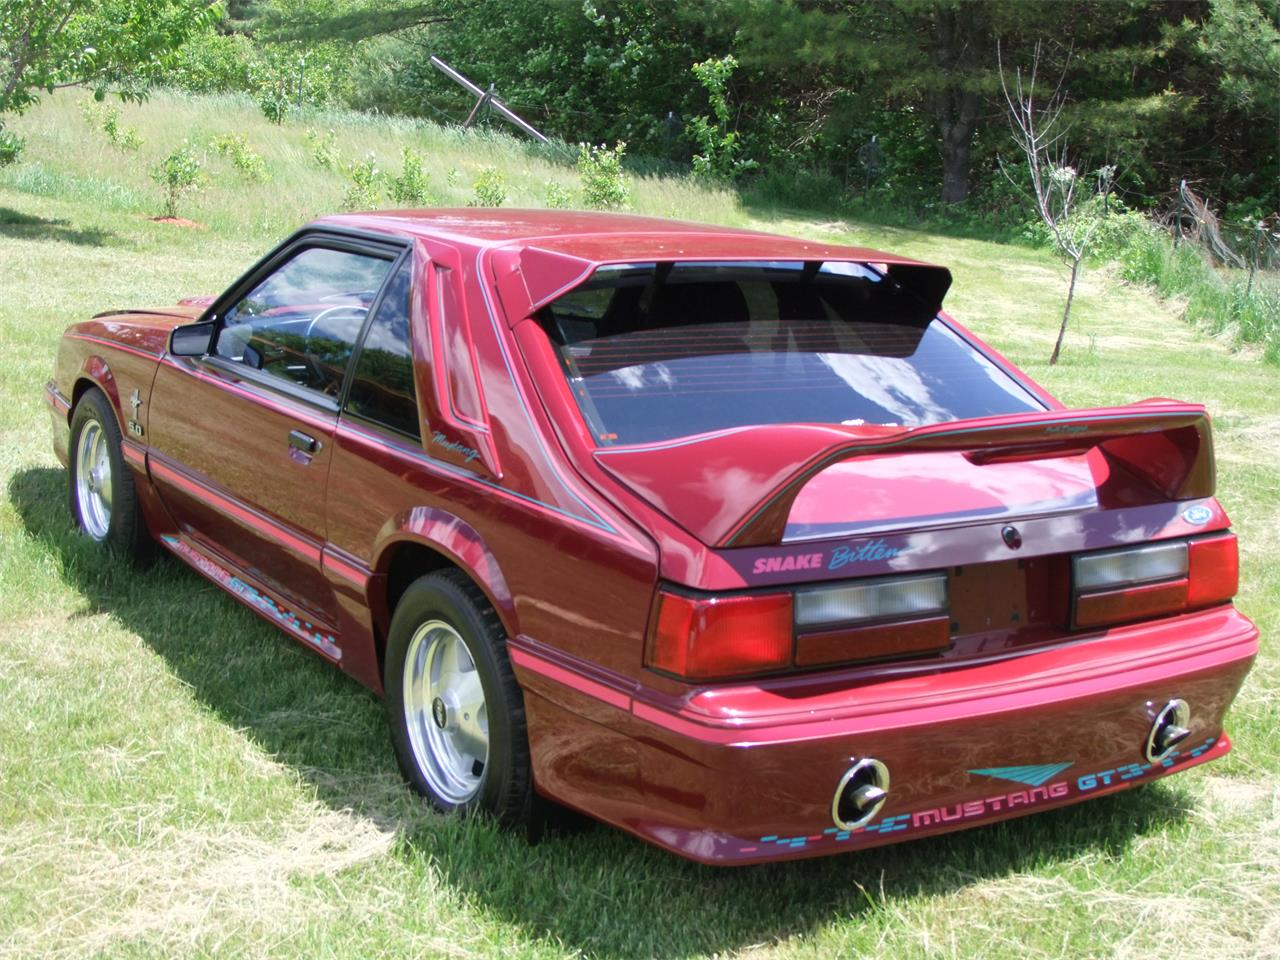 1989 Mustang Gt For Sale Near Me